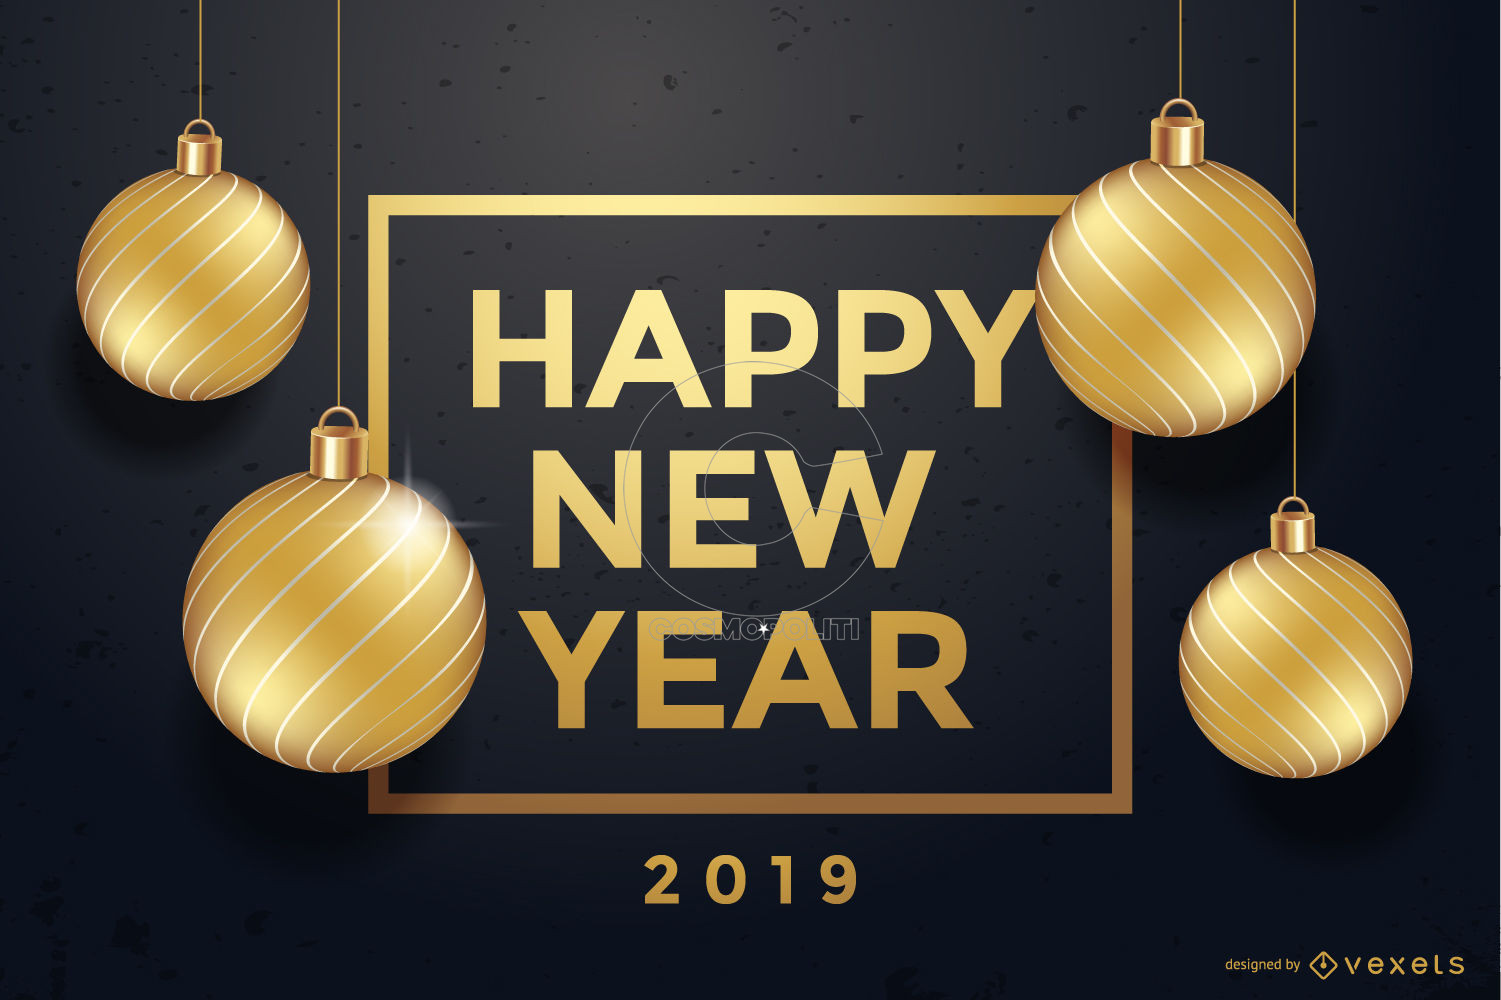 756a1798f84c78dd99666e3a18dce3fe-happy-new-year-2019-background